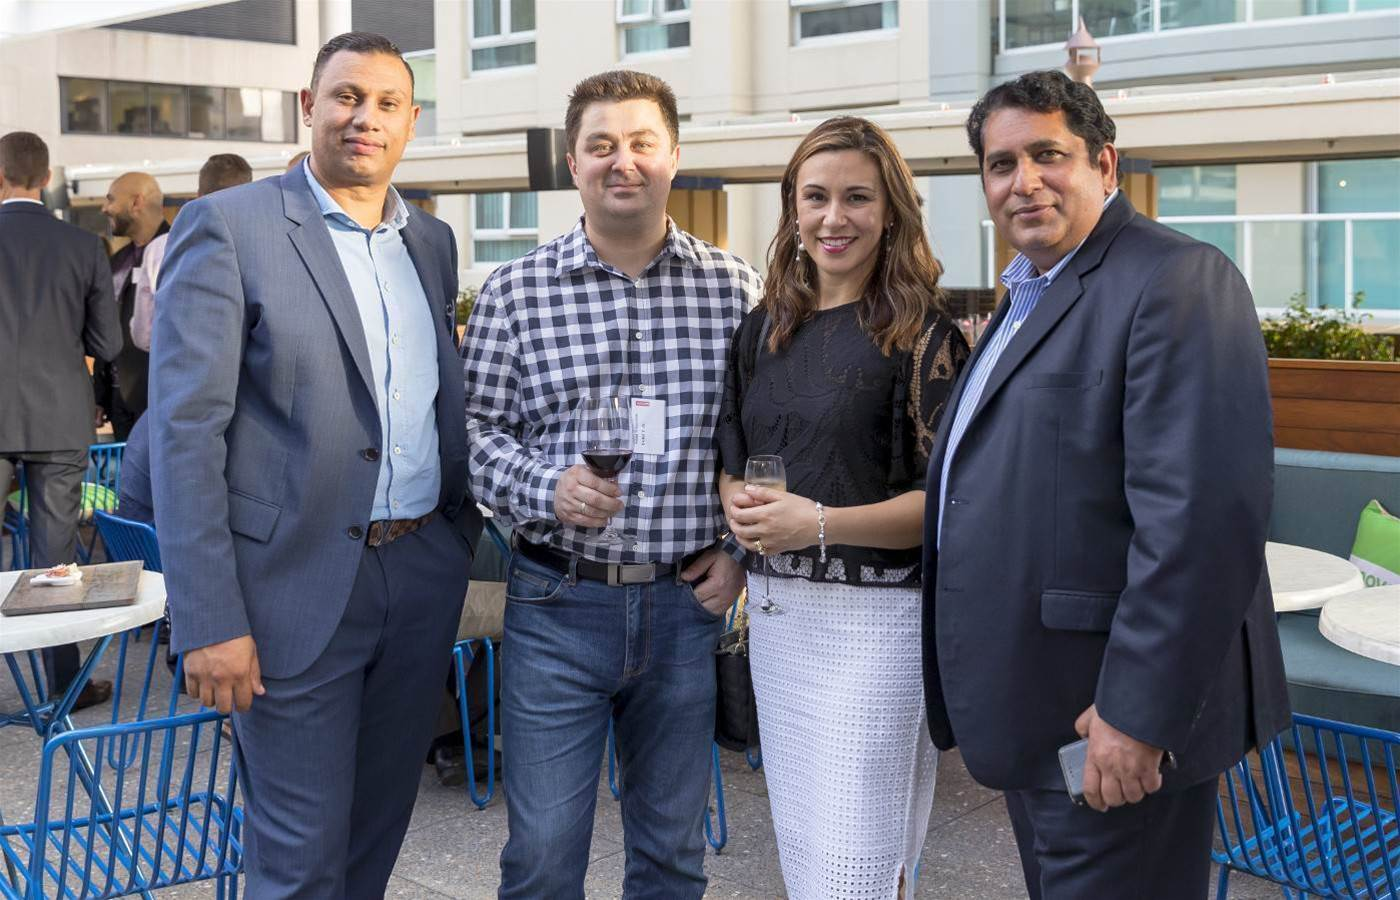 Lenovo Data Centre Group toasts partners, customers at end-of-year party